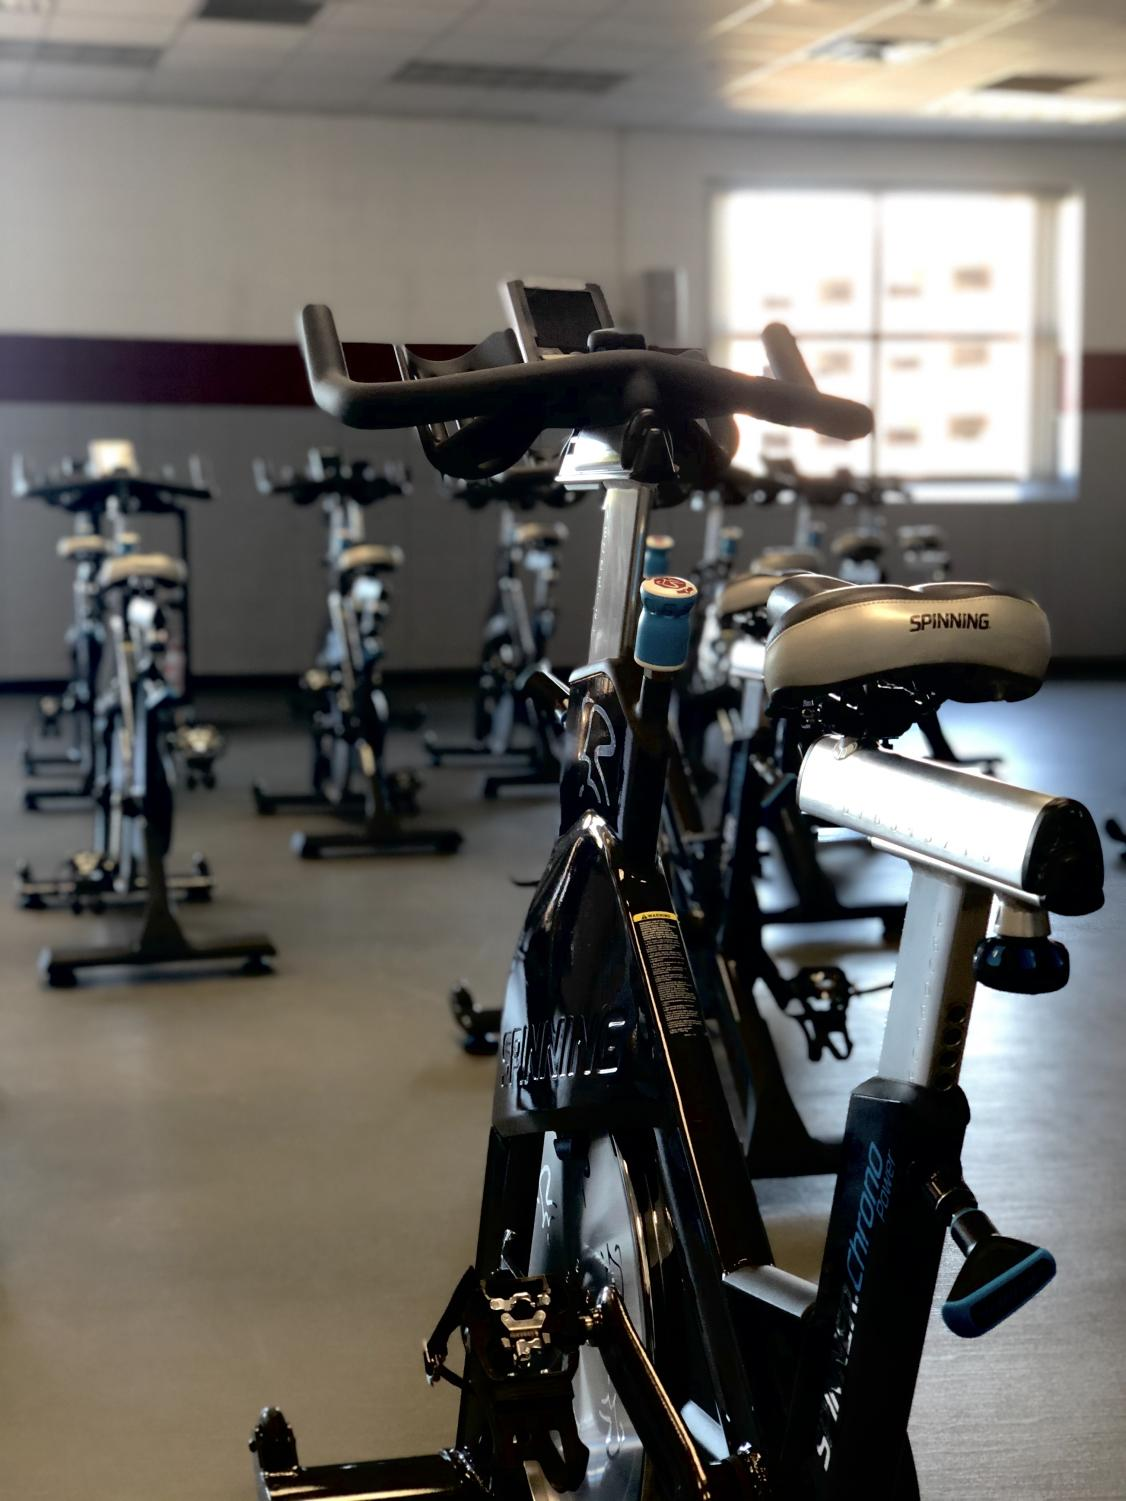 Fitness room at the Recreational Eagle Center. Photo by Liv Swanson.